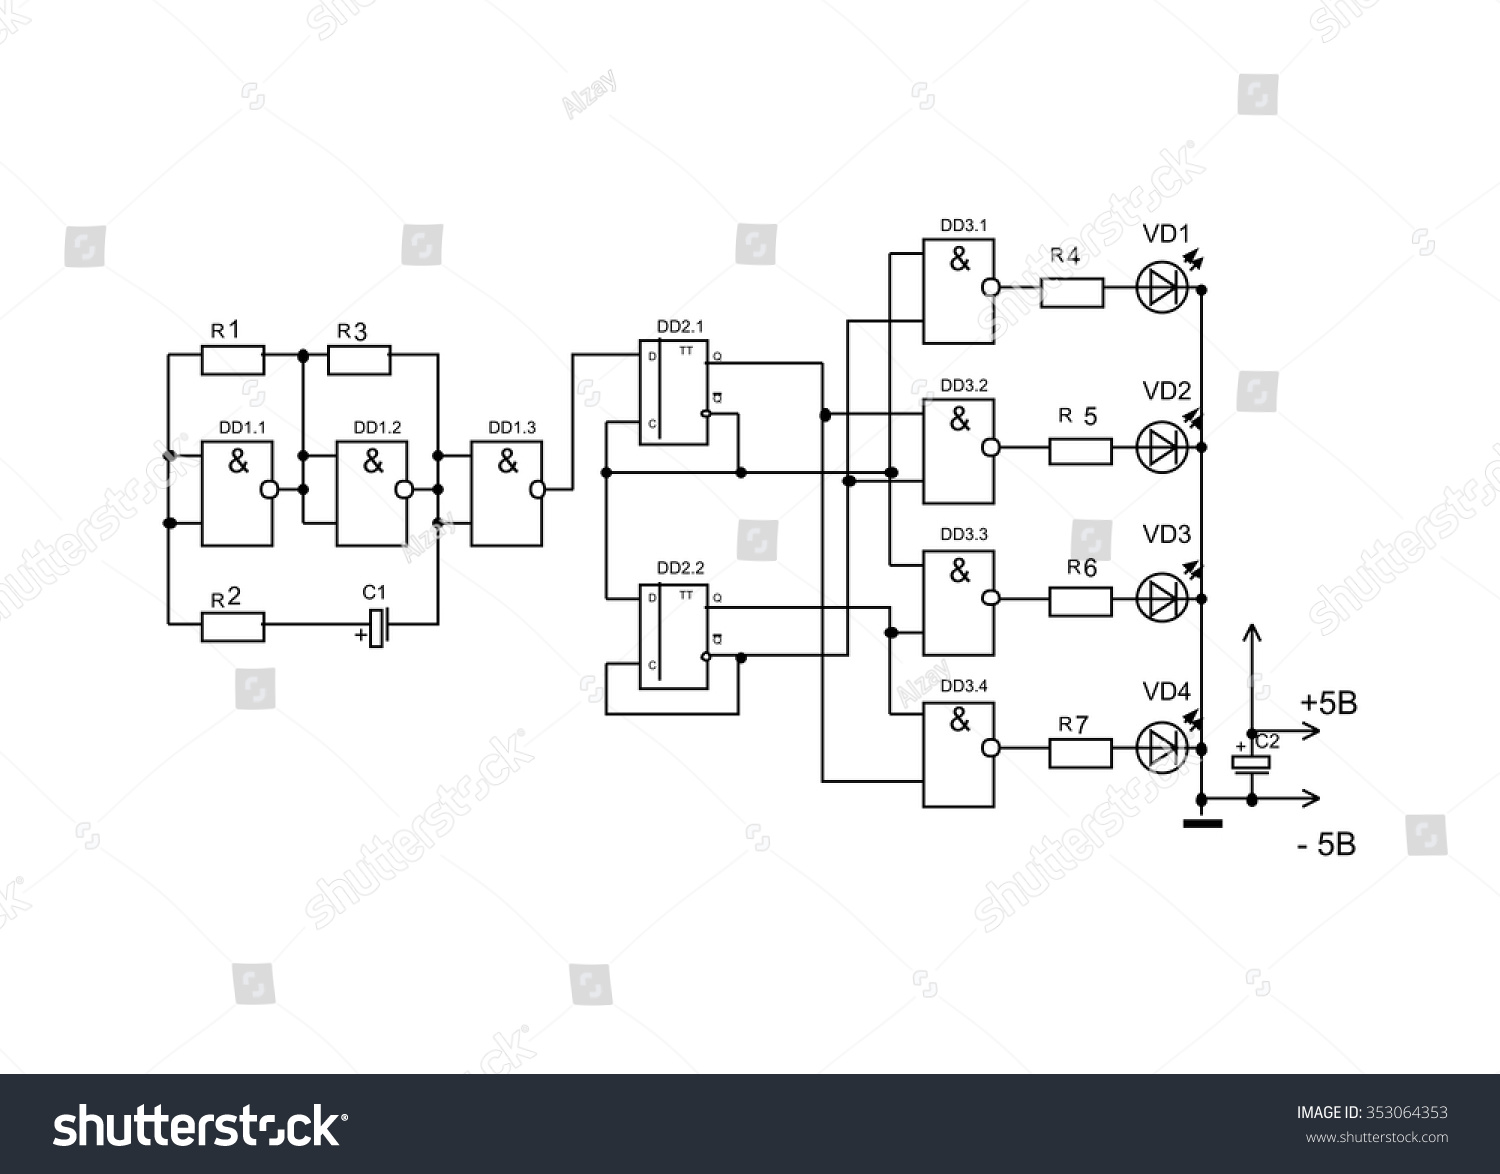 Royalty Free Vector Schematic Diagram Project Of 353064353 Stock Electronics Circuits Diagrams Projects Electronic Circuit Graphic Design Components